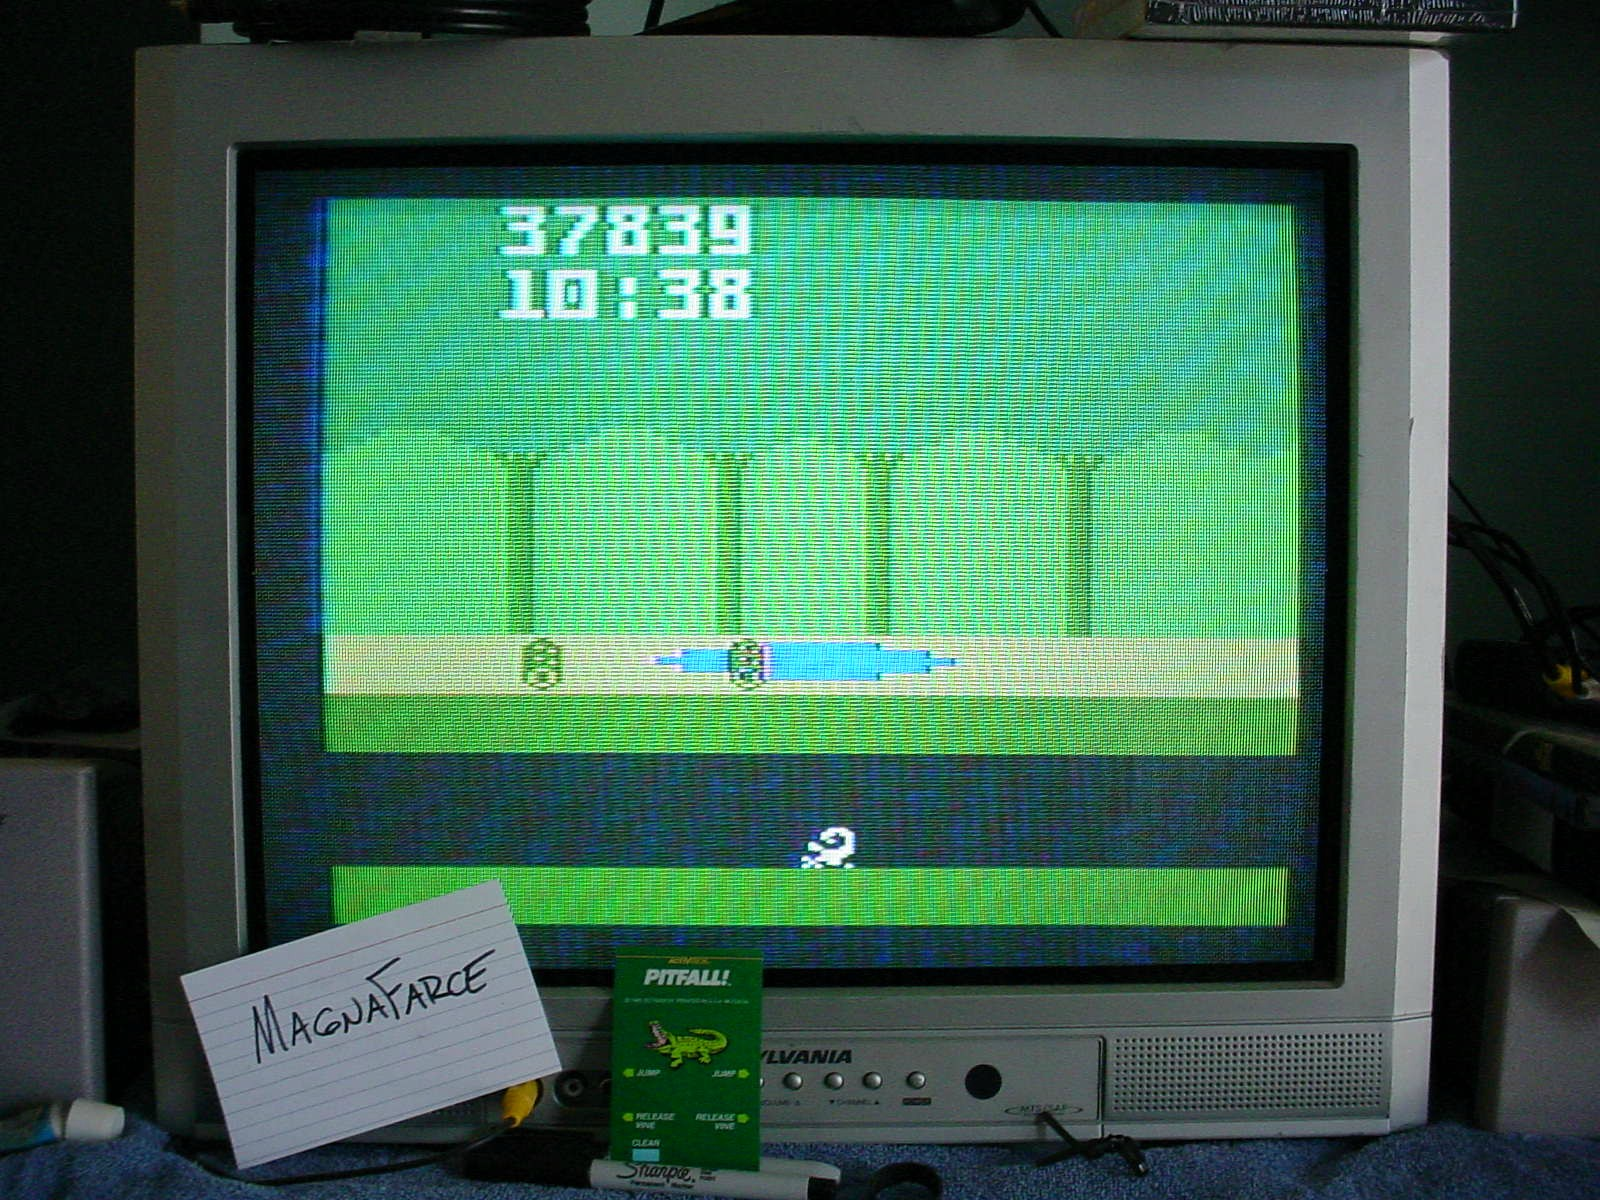 Pitfall 37,839 points